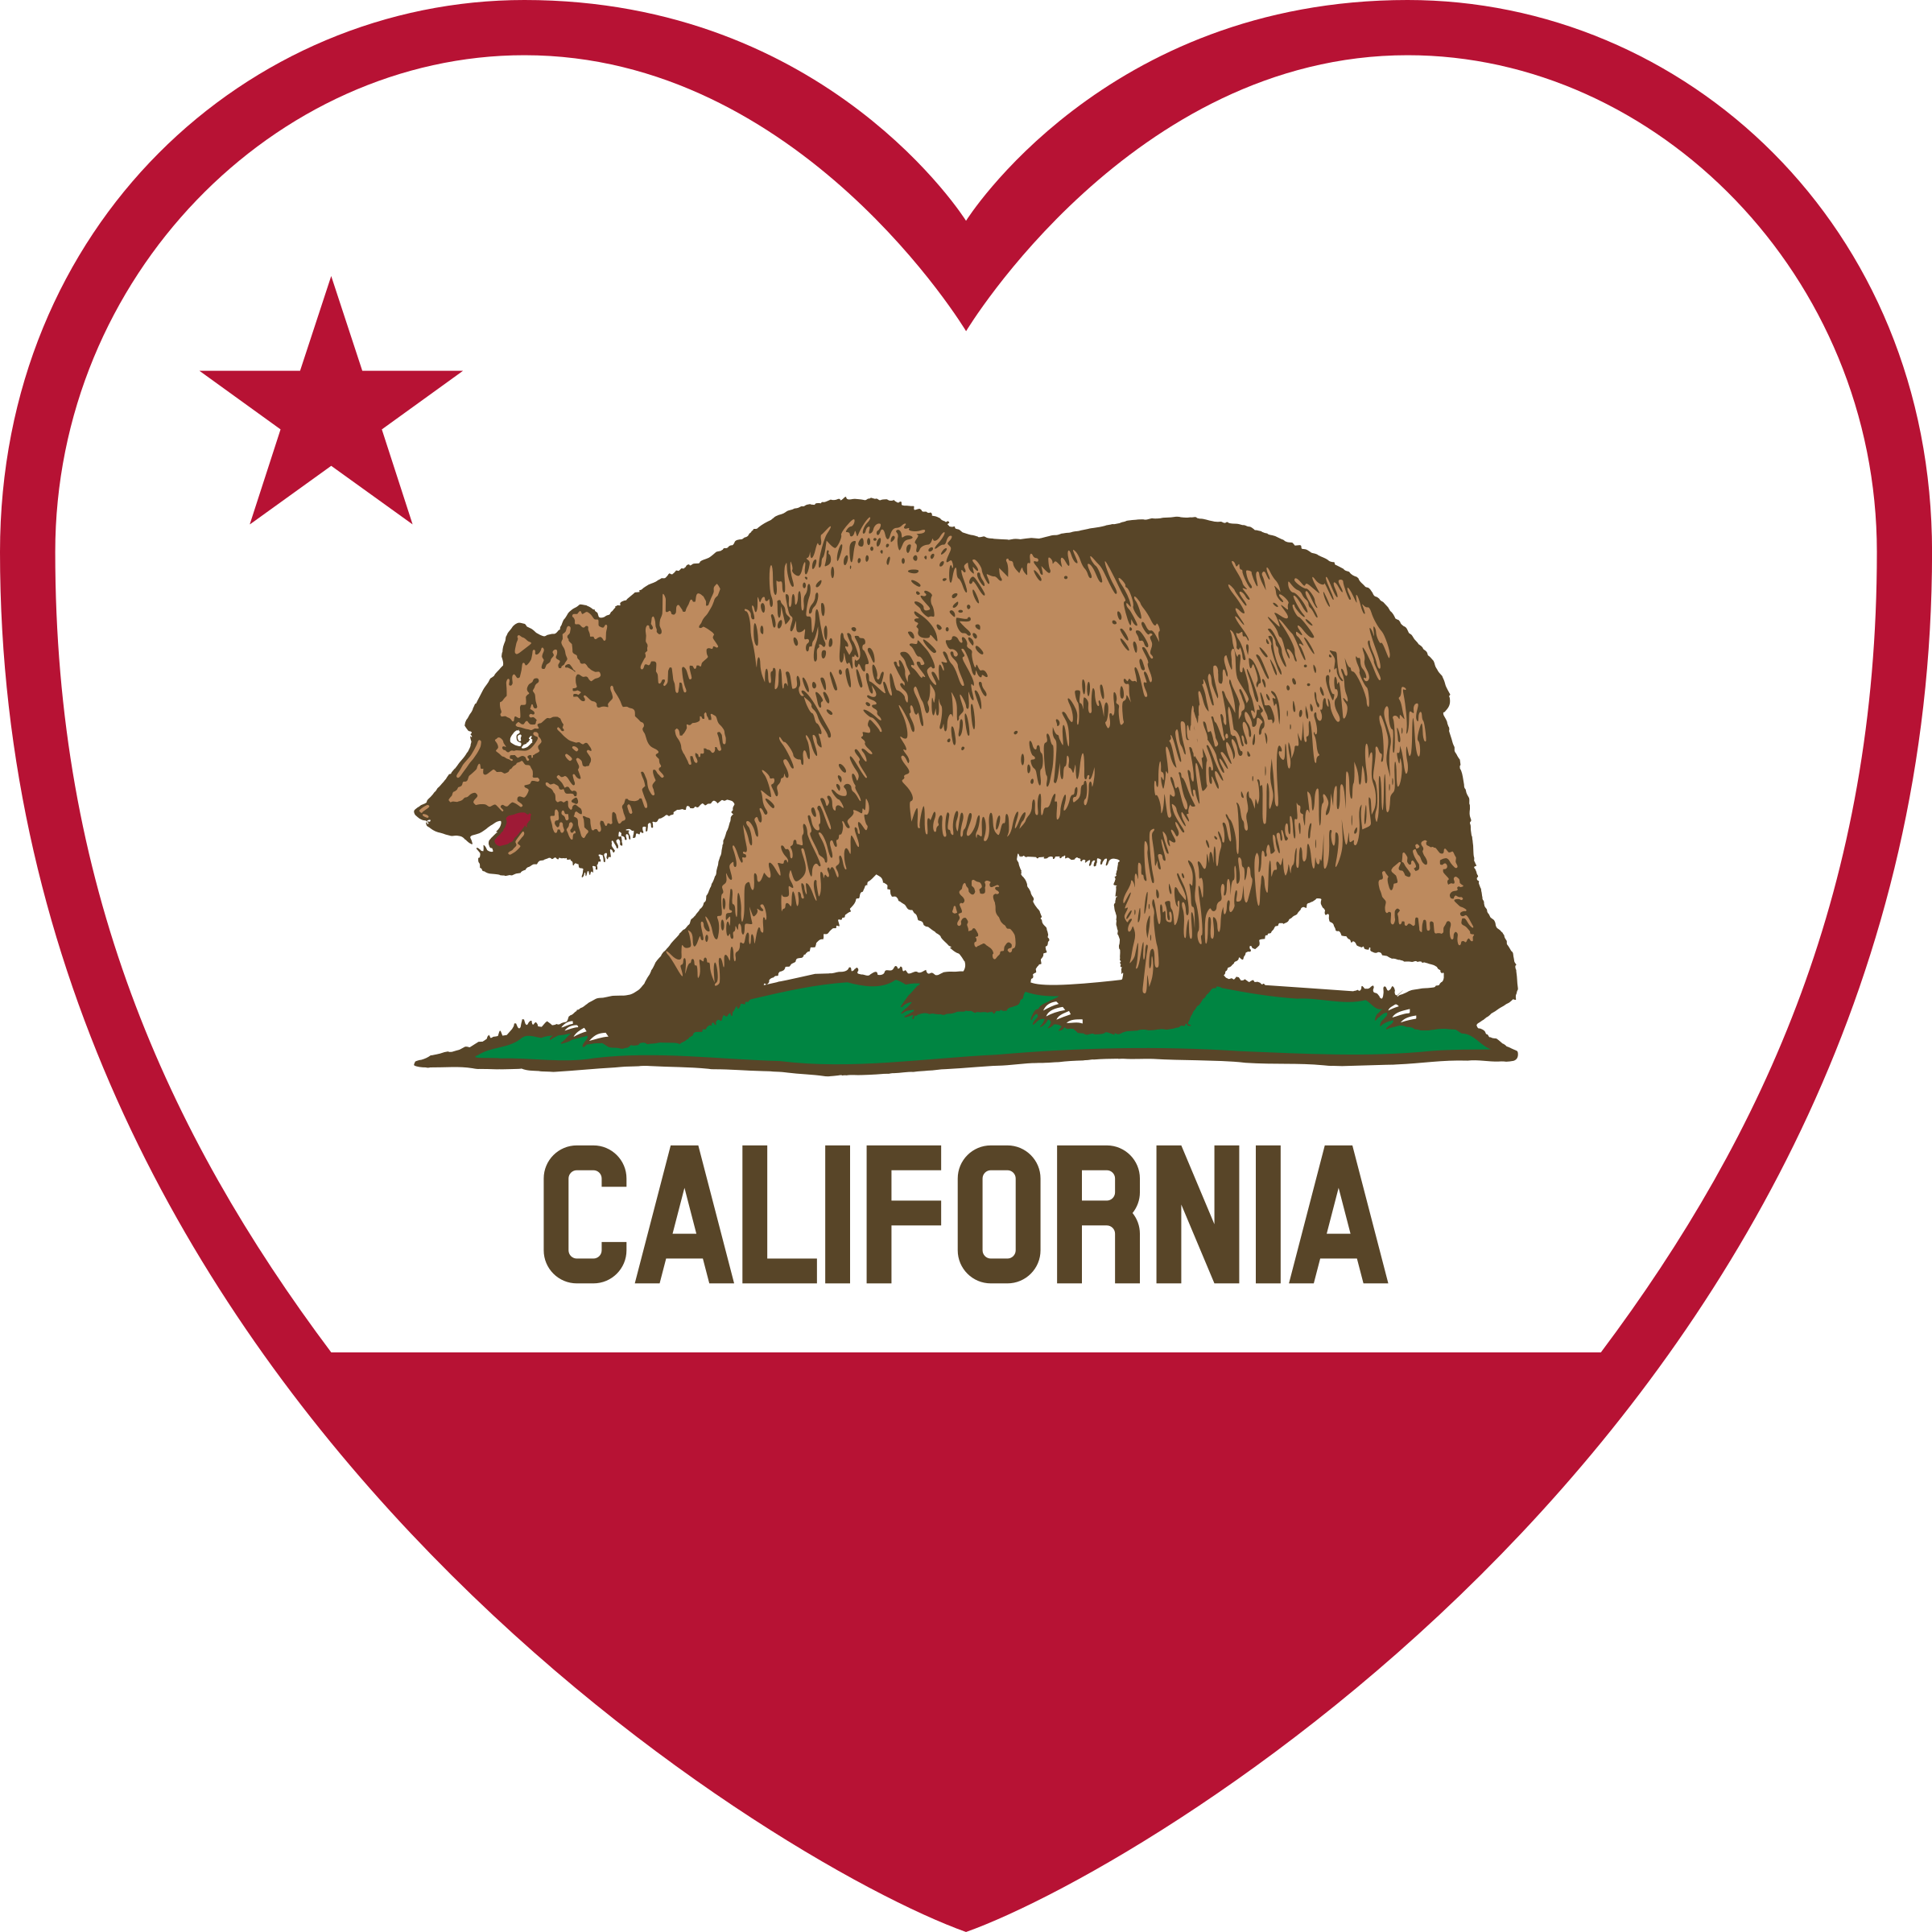 California flag png. Heart icons free and